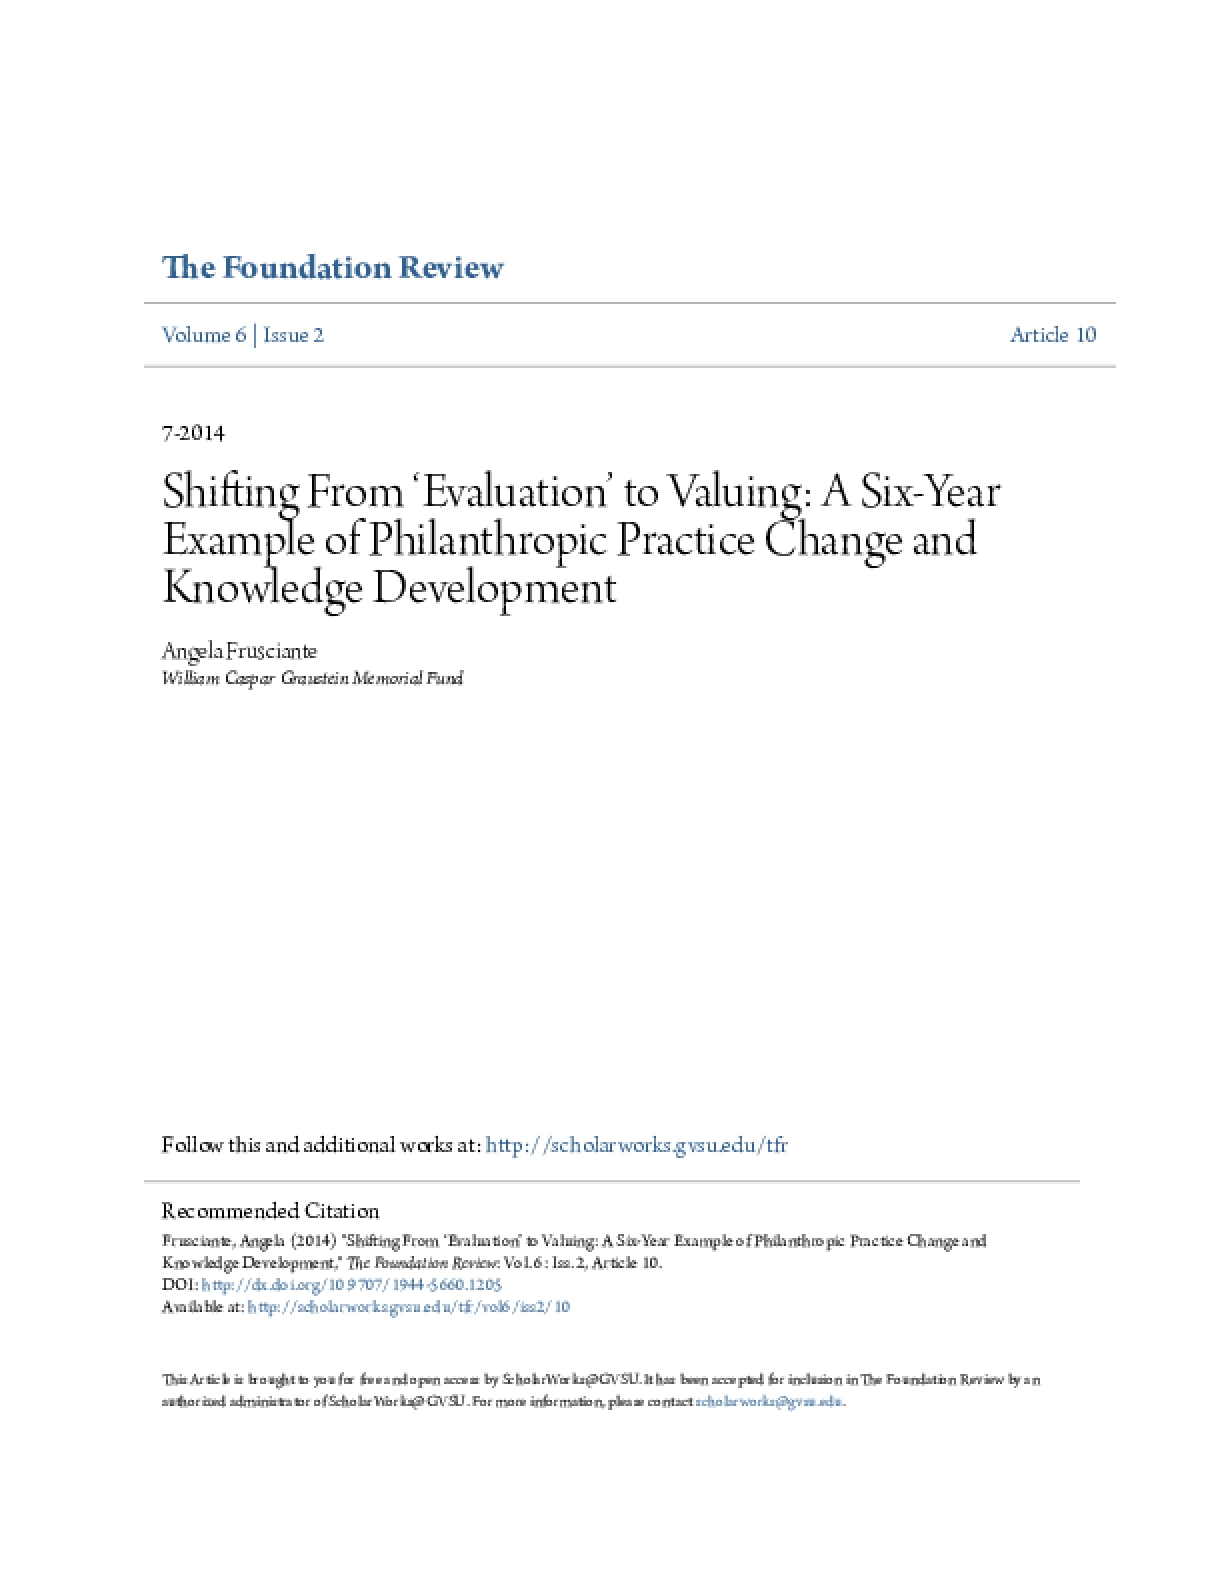 Shifting From 'Evaluation' to Valuing: A Six-Year Example of Philanthropic Practice Change and Knowledge Development